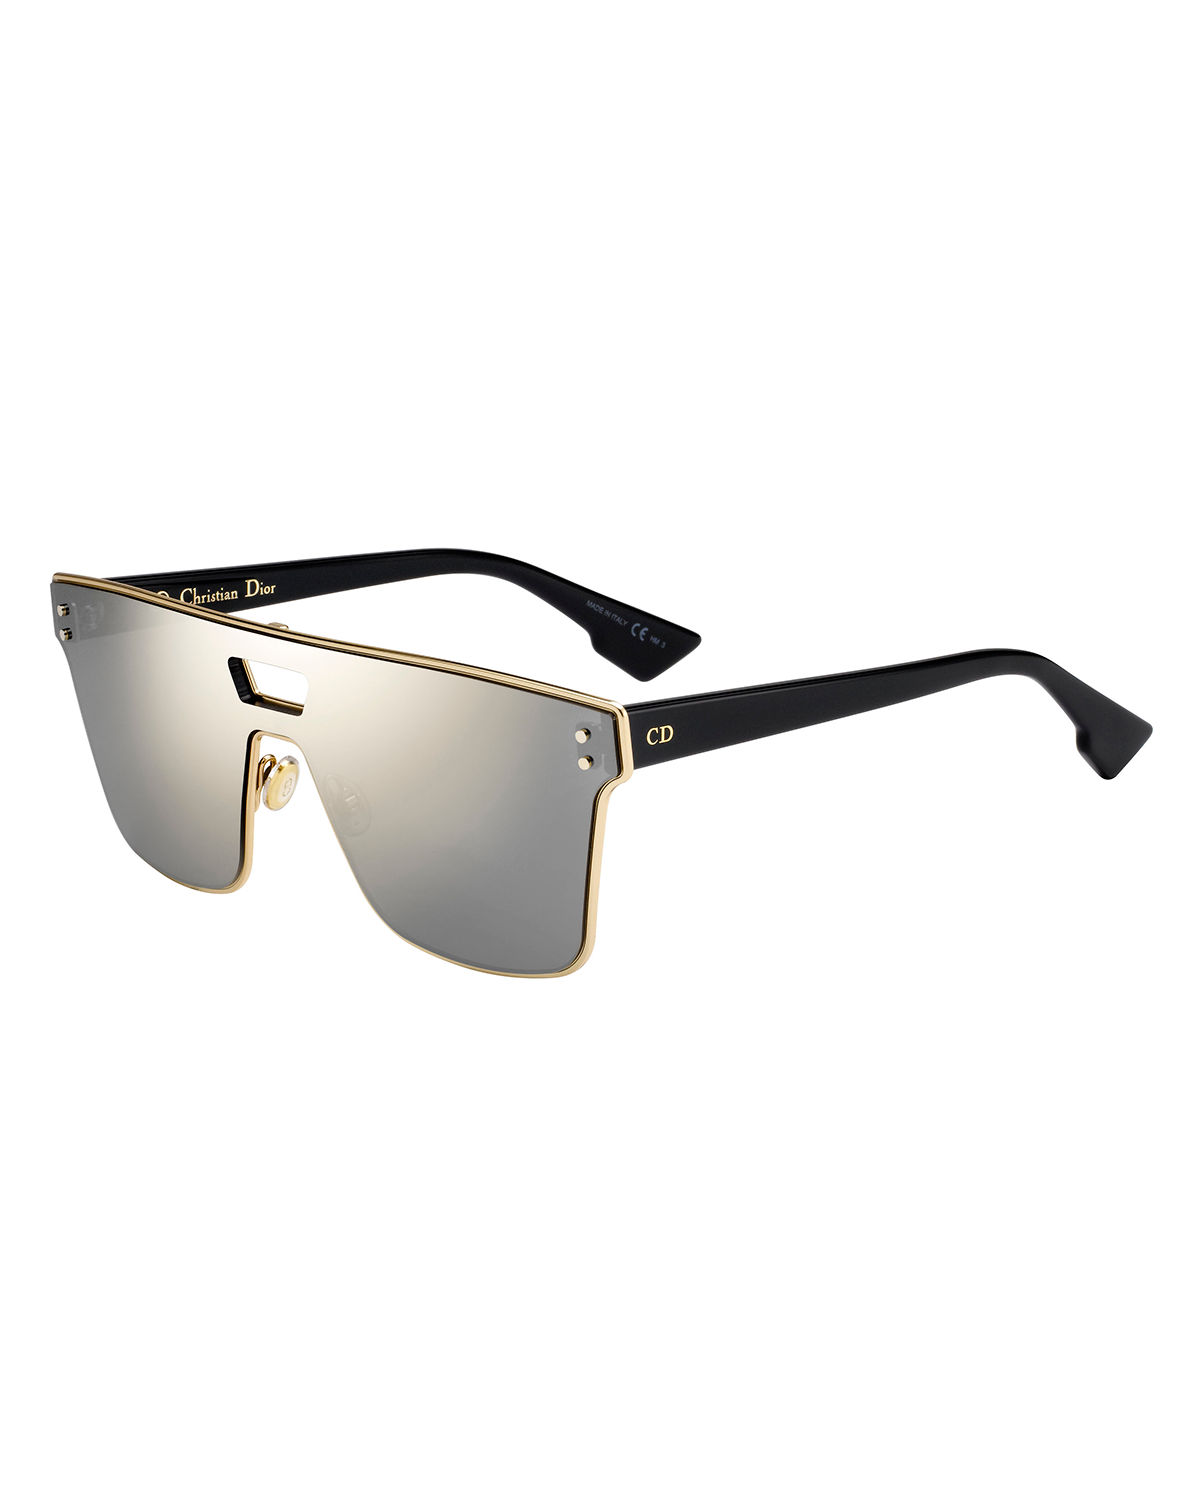 c9770479b7 Dior Diorizon Mirrored Shield Sunglasses